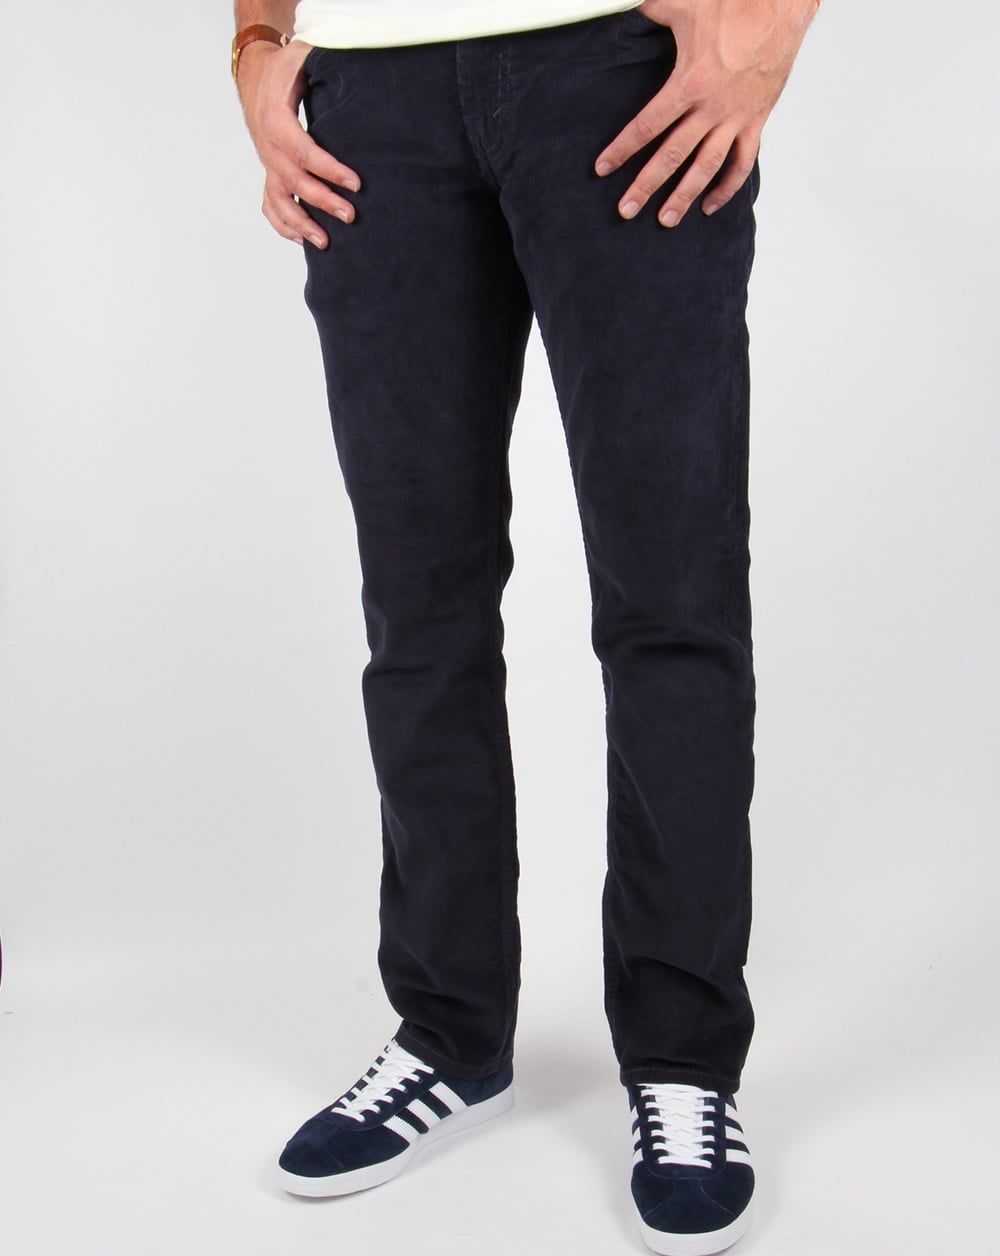 511 Best Images About Eye Makeup On Pinterest: Levis 511 Slim Fit Cords Nightwatch Blue,mens,retro